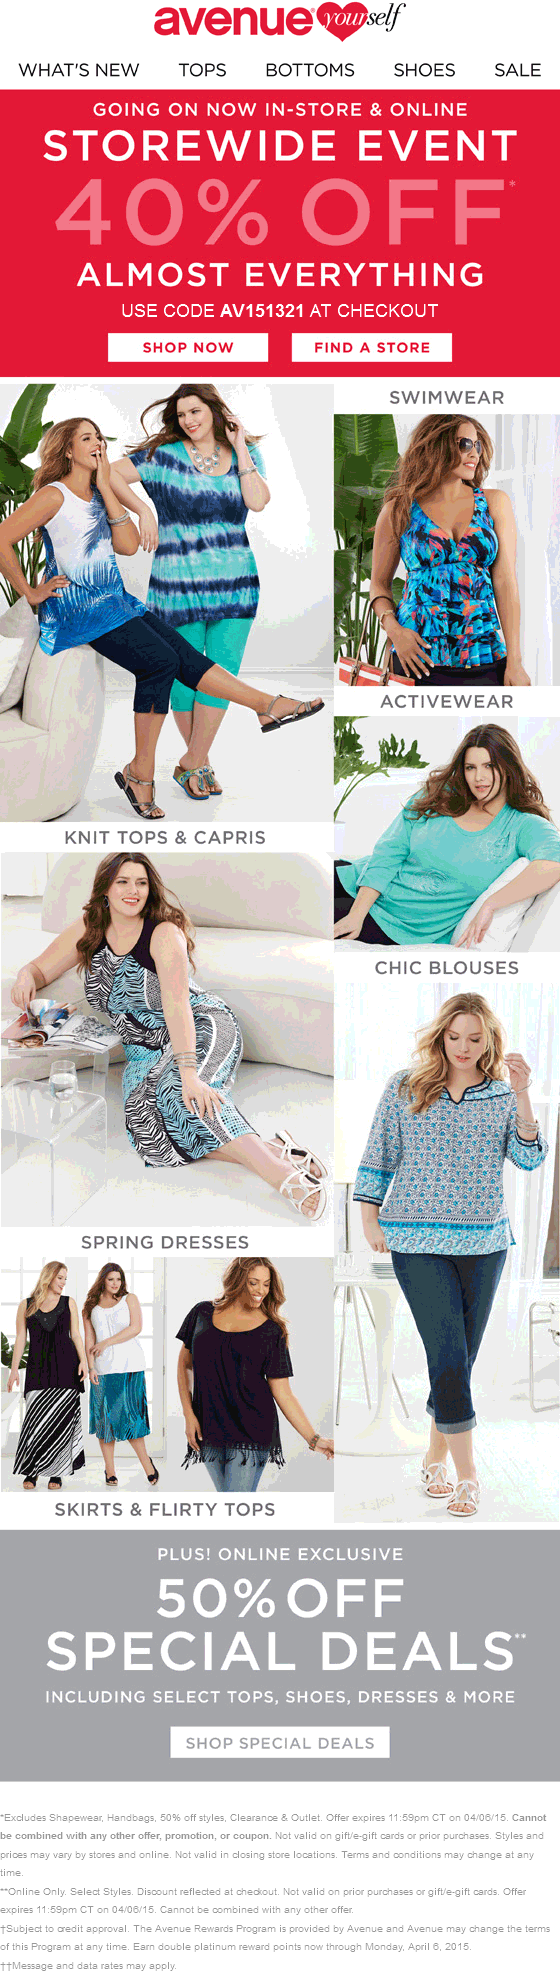 Avenue Coupon May 2018 40% off at Avenue, or online via promo code AV151321